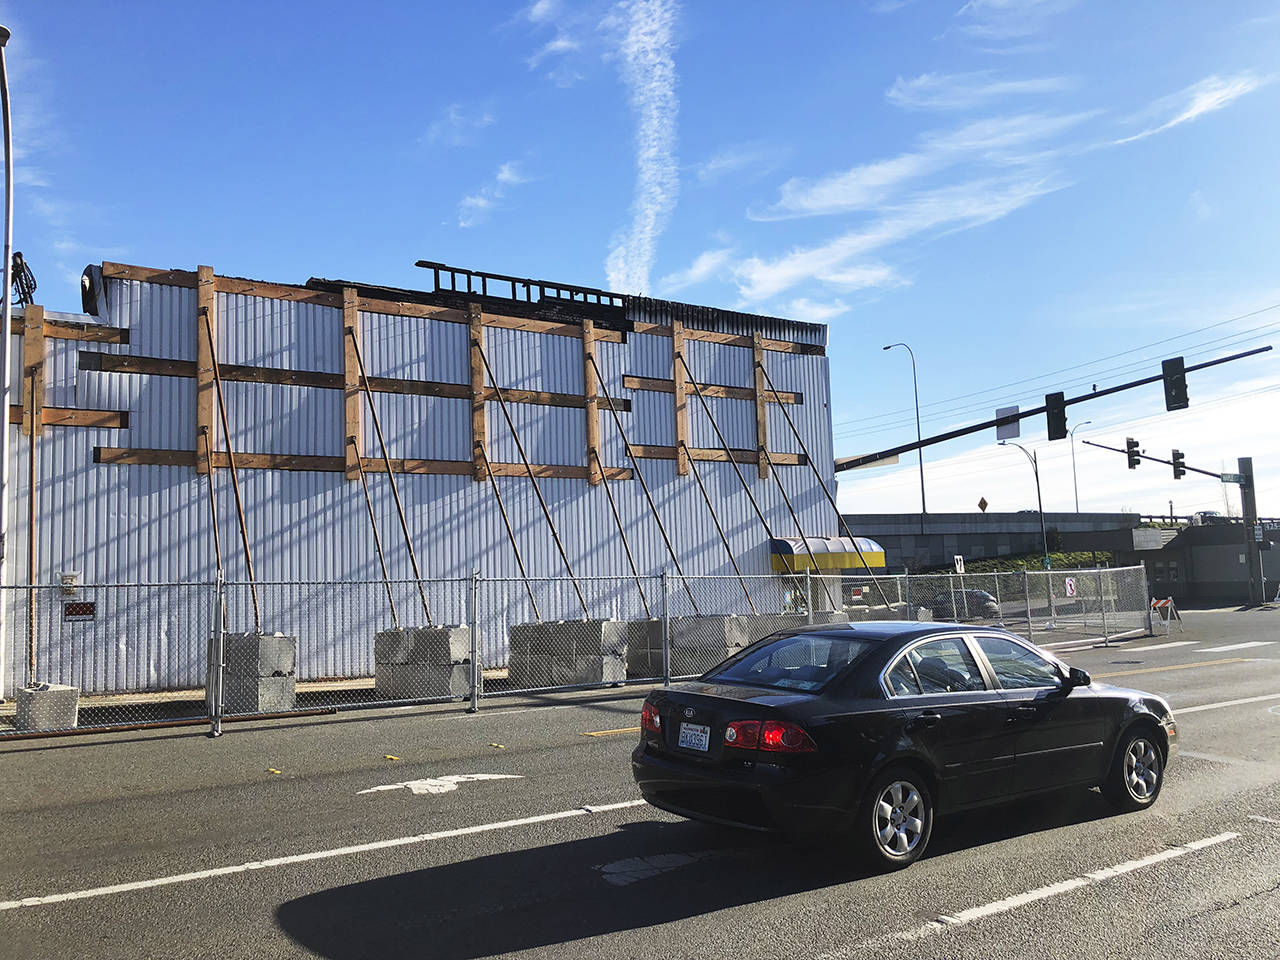 Almost four months after a fire at Judd & Black in Everett, police announced it was caused by arson. One lane of northbound Maple Street was still closed Wednesday at Hewitt Avenue. (Caleb Hutton / The Herald)